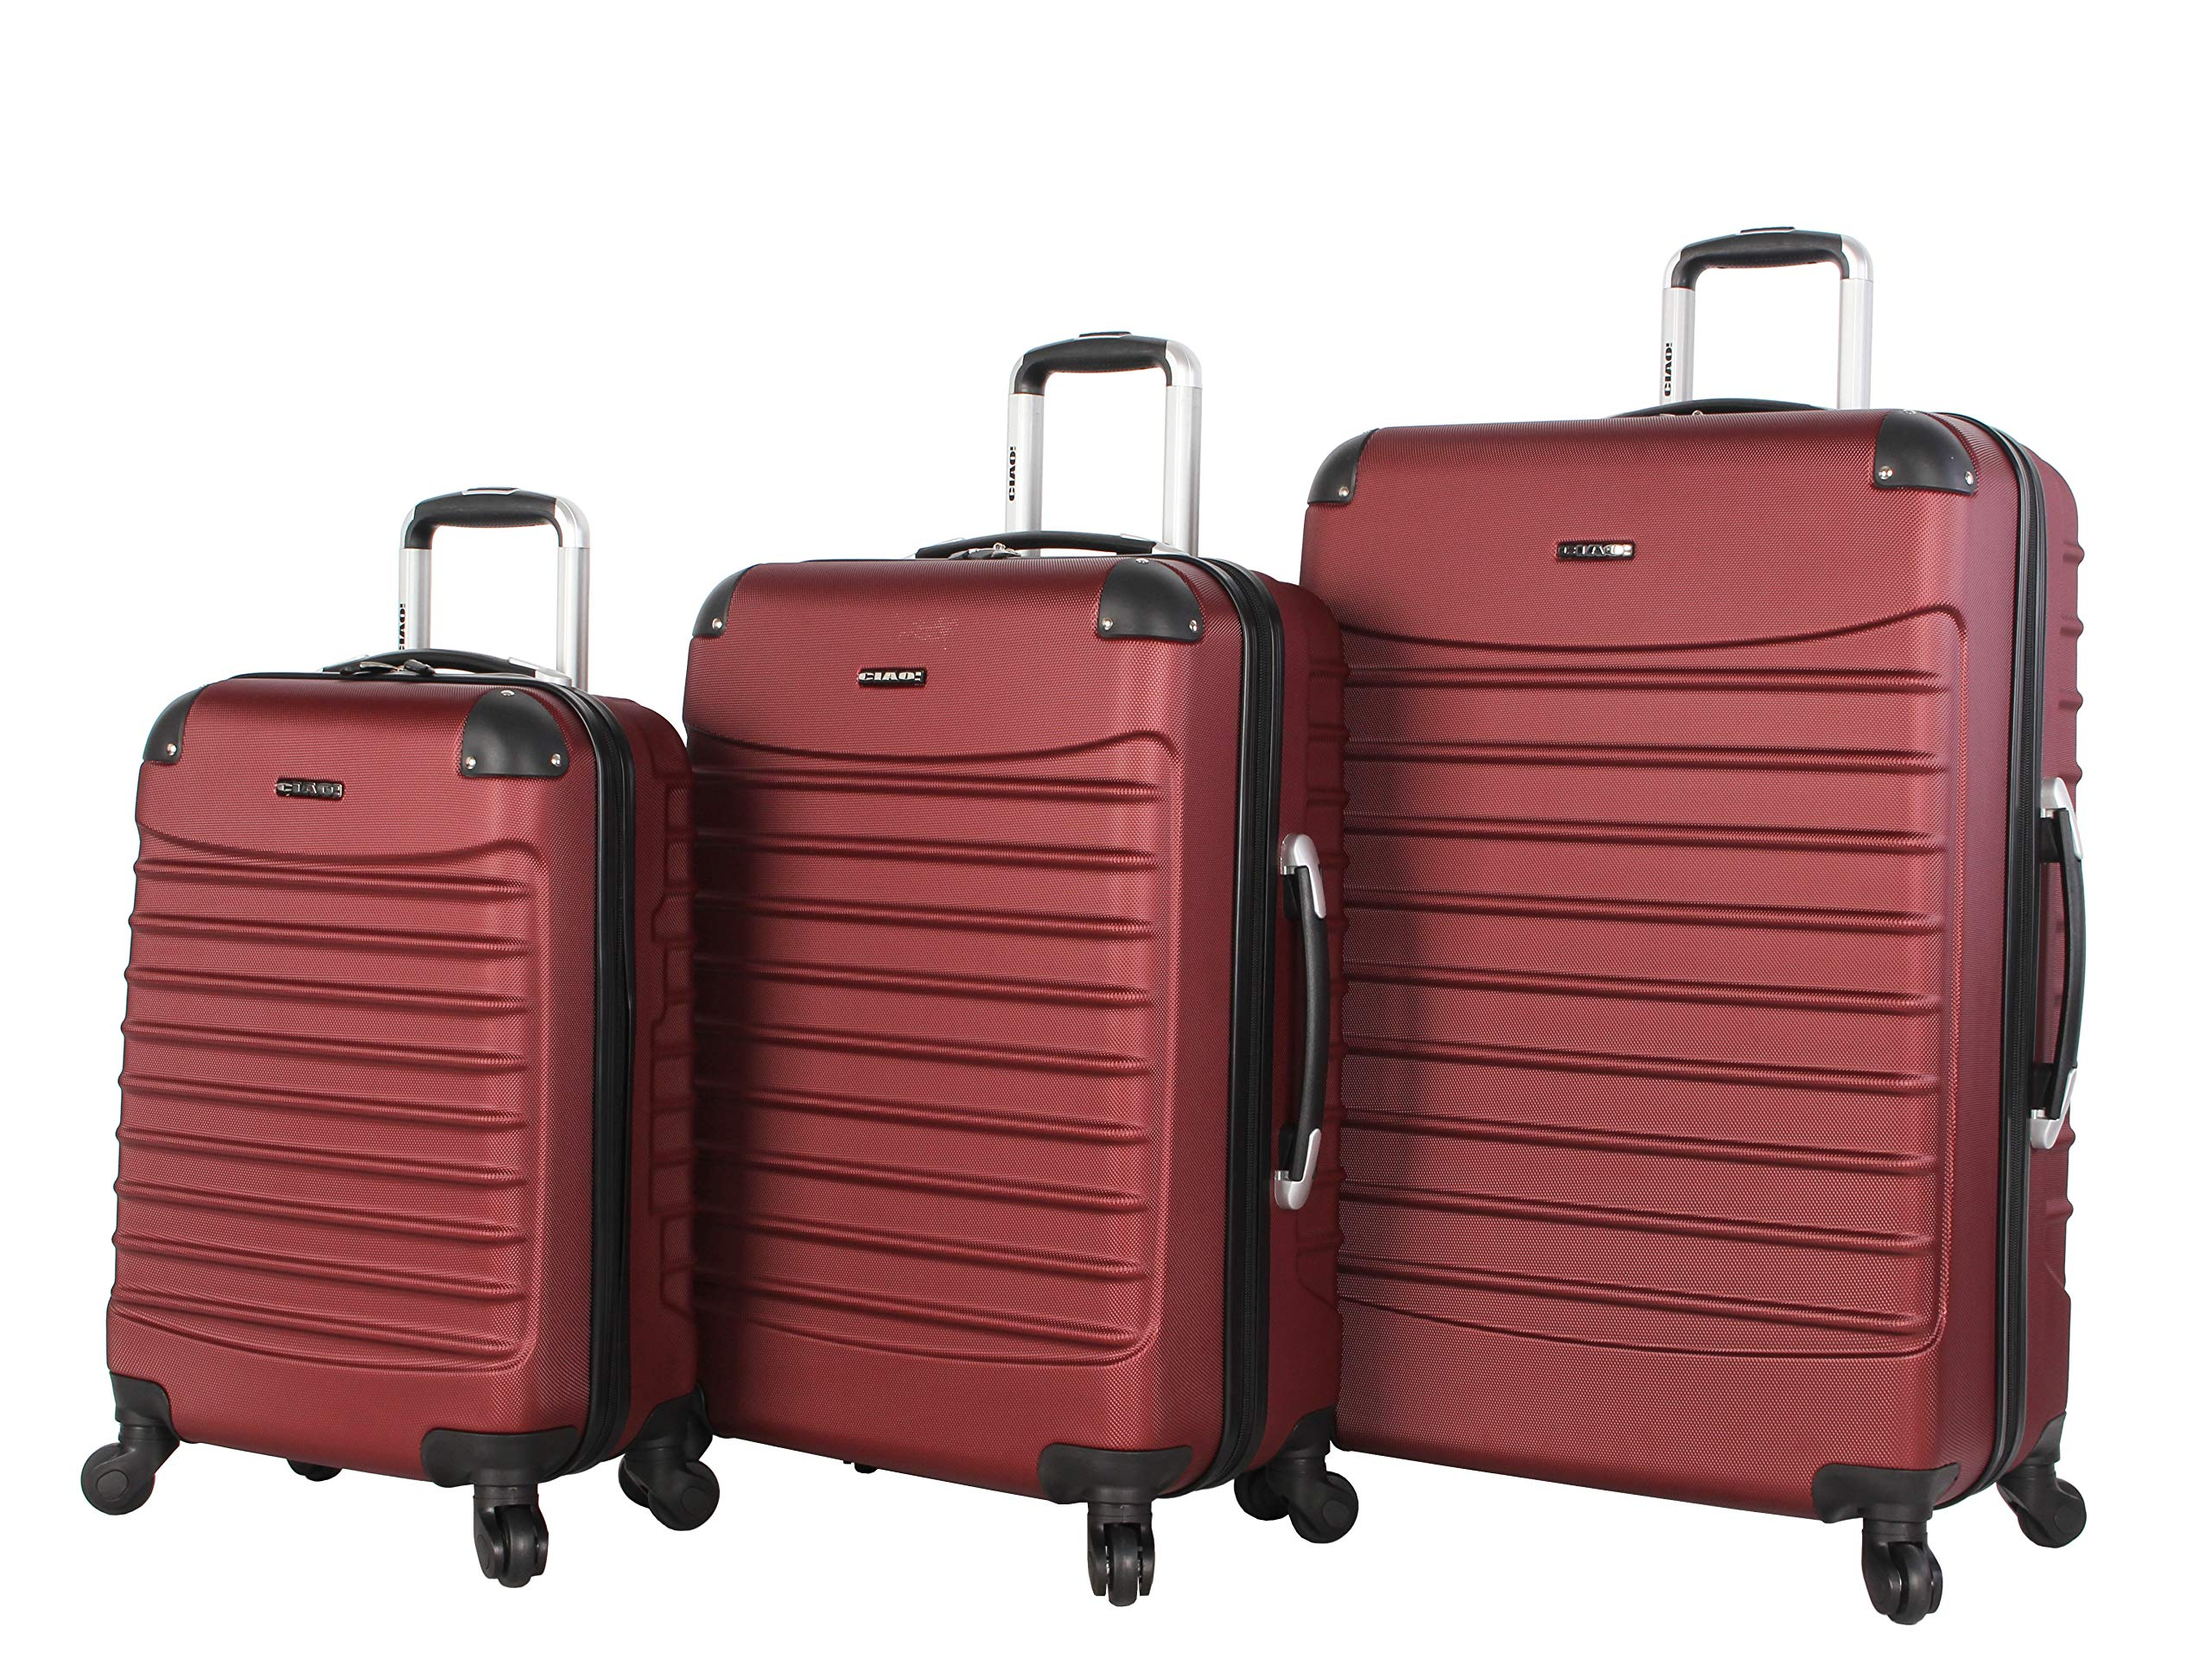 Ciao Voyager Luggage Collection - 3 Piece Hardside Lightweight Spinner Suitcase Set - Travel Set includes 20-Inch Carry On, 24 inch and 28-Inch Checked Suitcases (Voyager Burgundy)